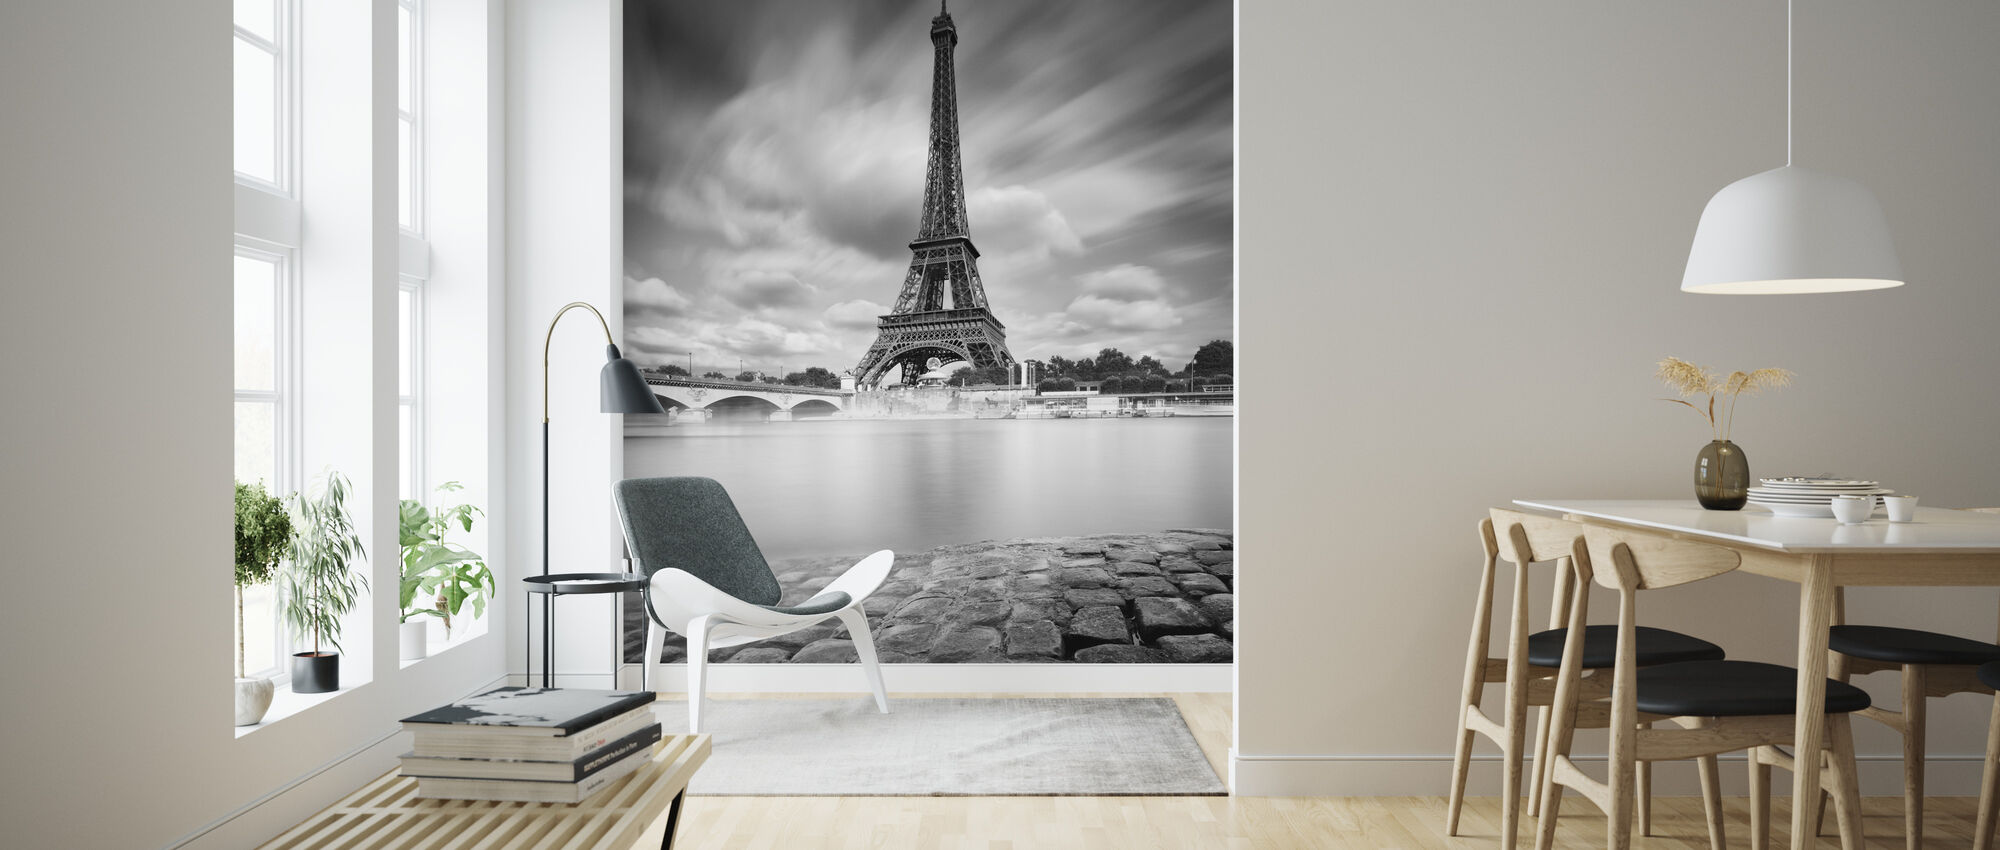 Eiffel Tower Study - Wallpaper - Living Room